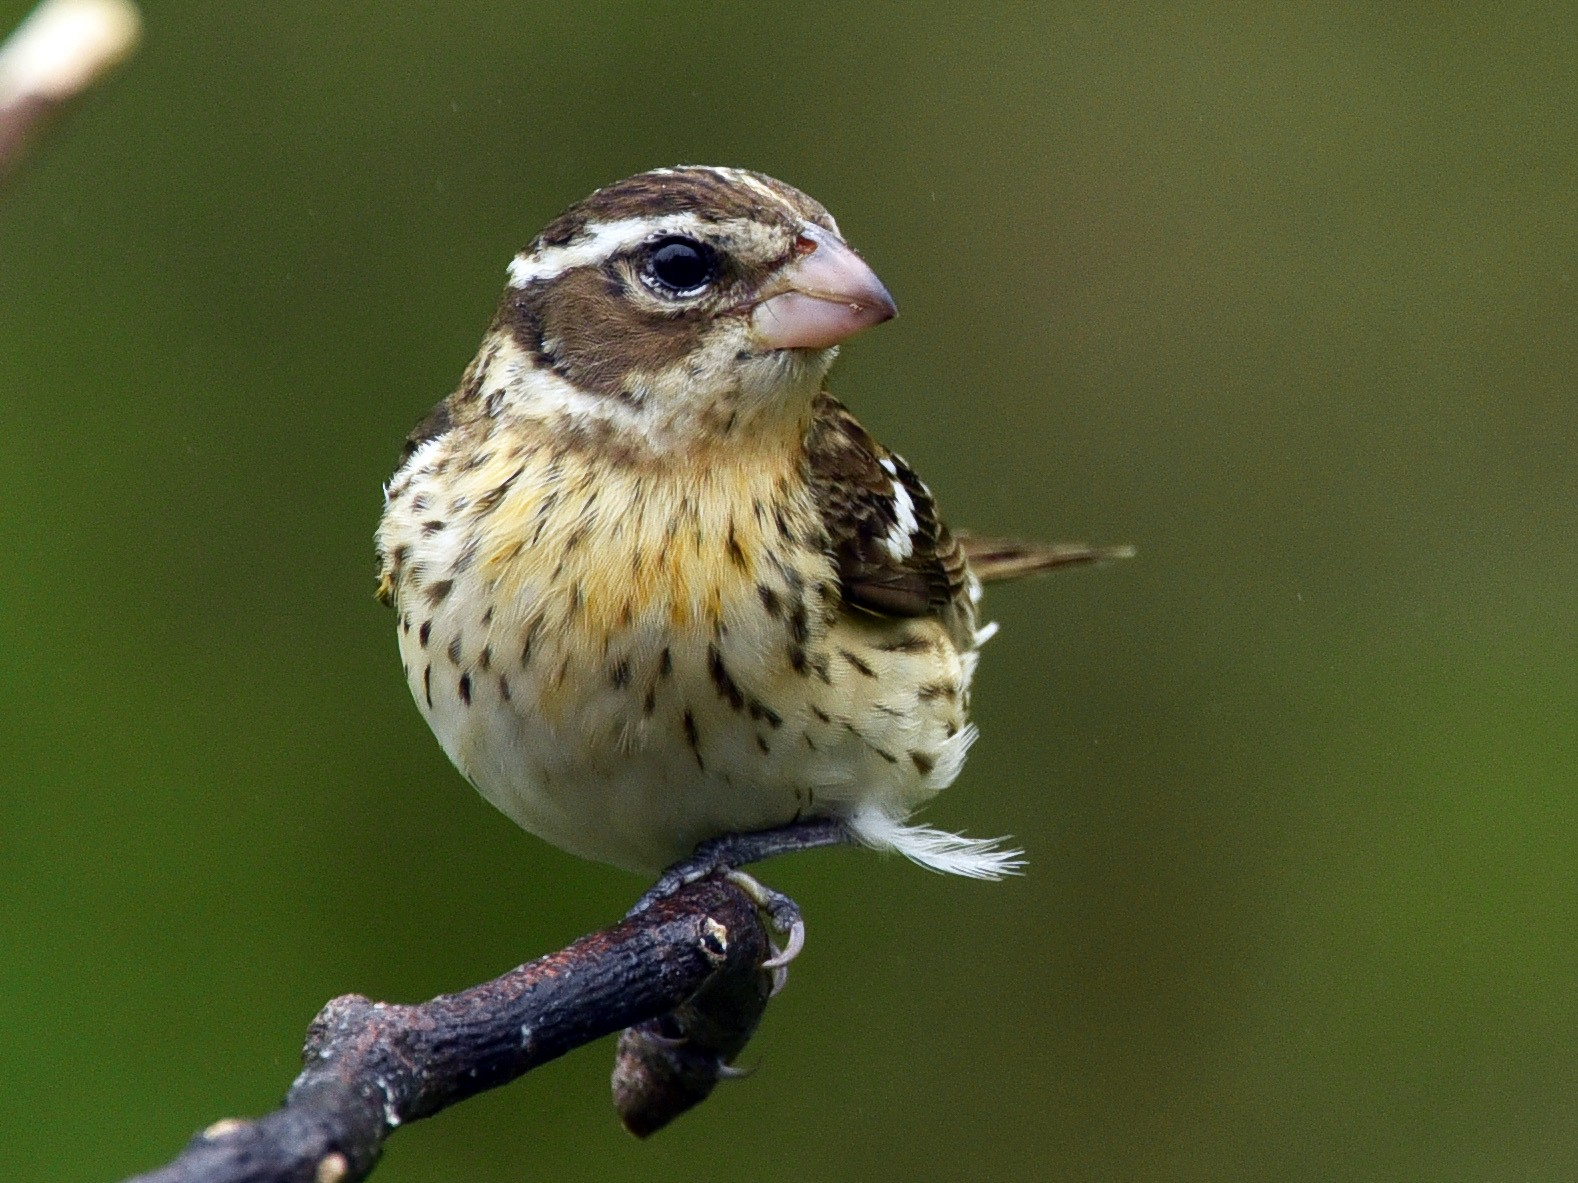 Rose-breasted Grosbeak - Deborah Bifulco